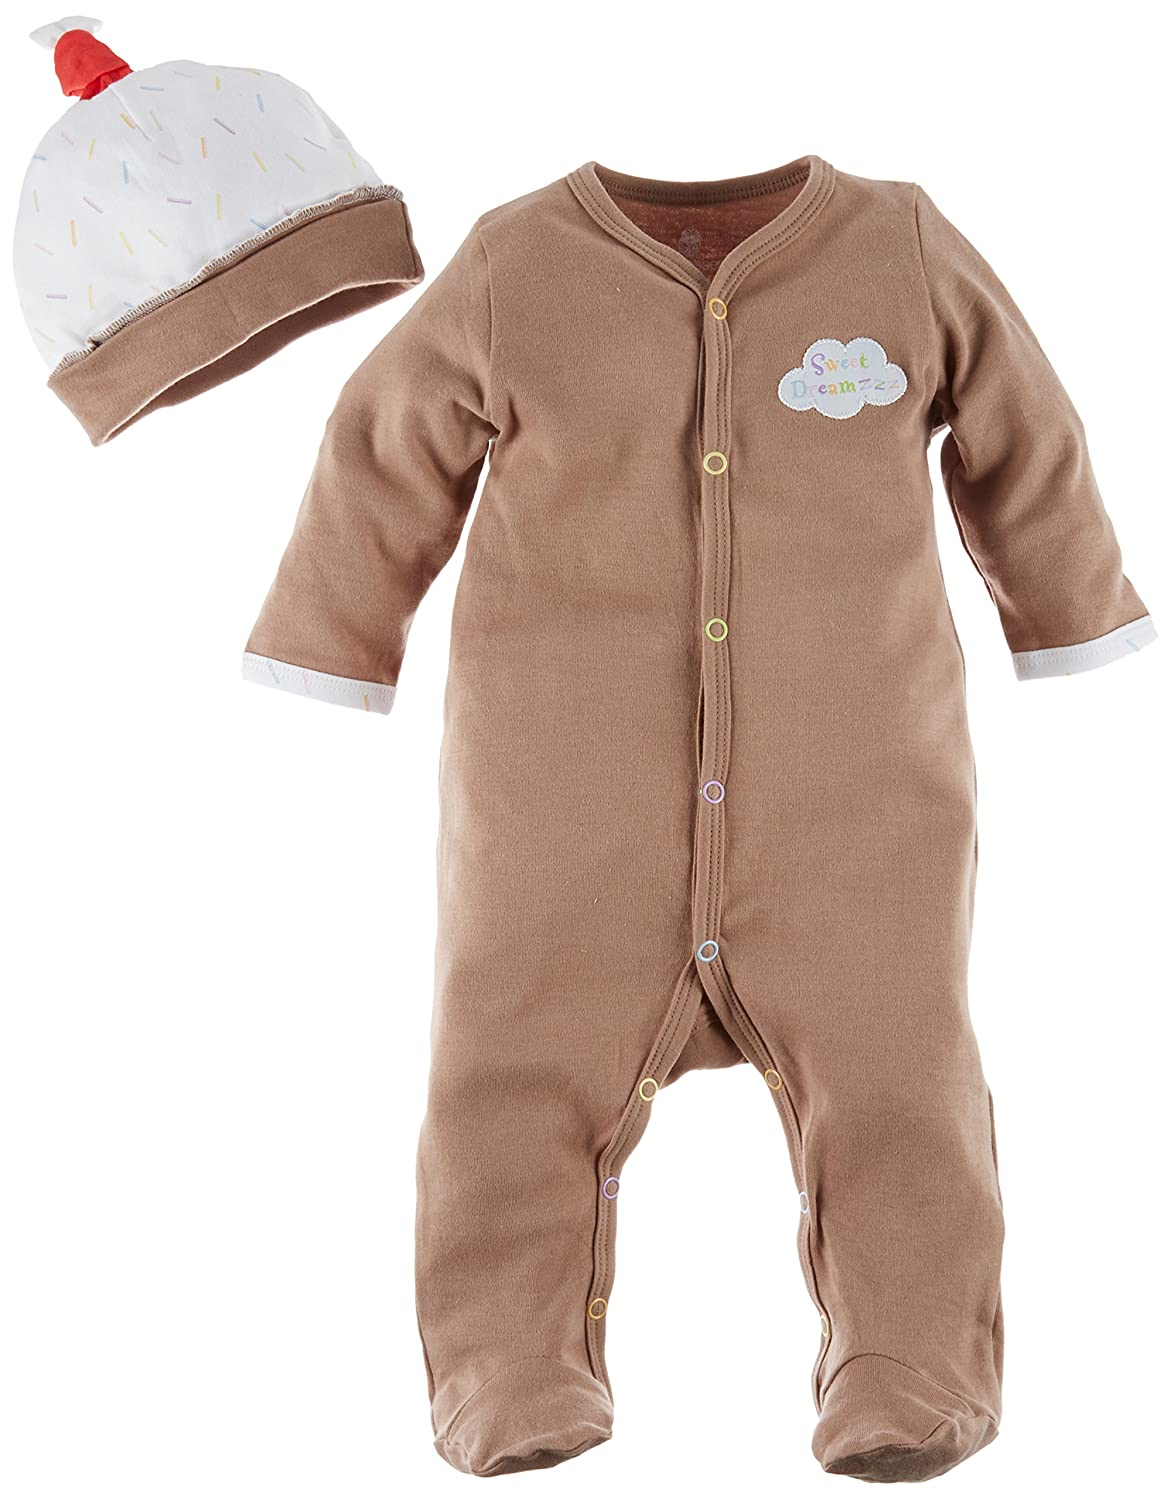 Baby Aspen Sweet Dreamzzz Pint of PJ's Sleep Time Gift Set, 0-6 Months, Chocolate BA16008BR